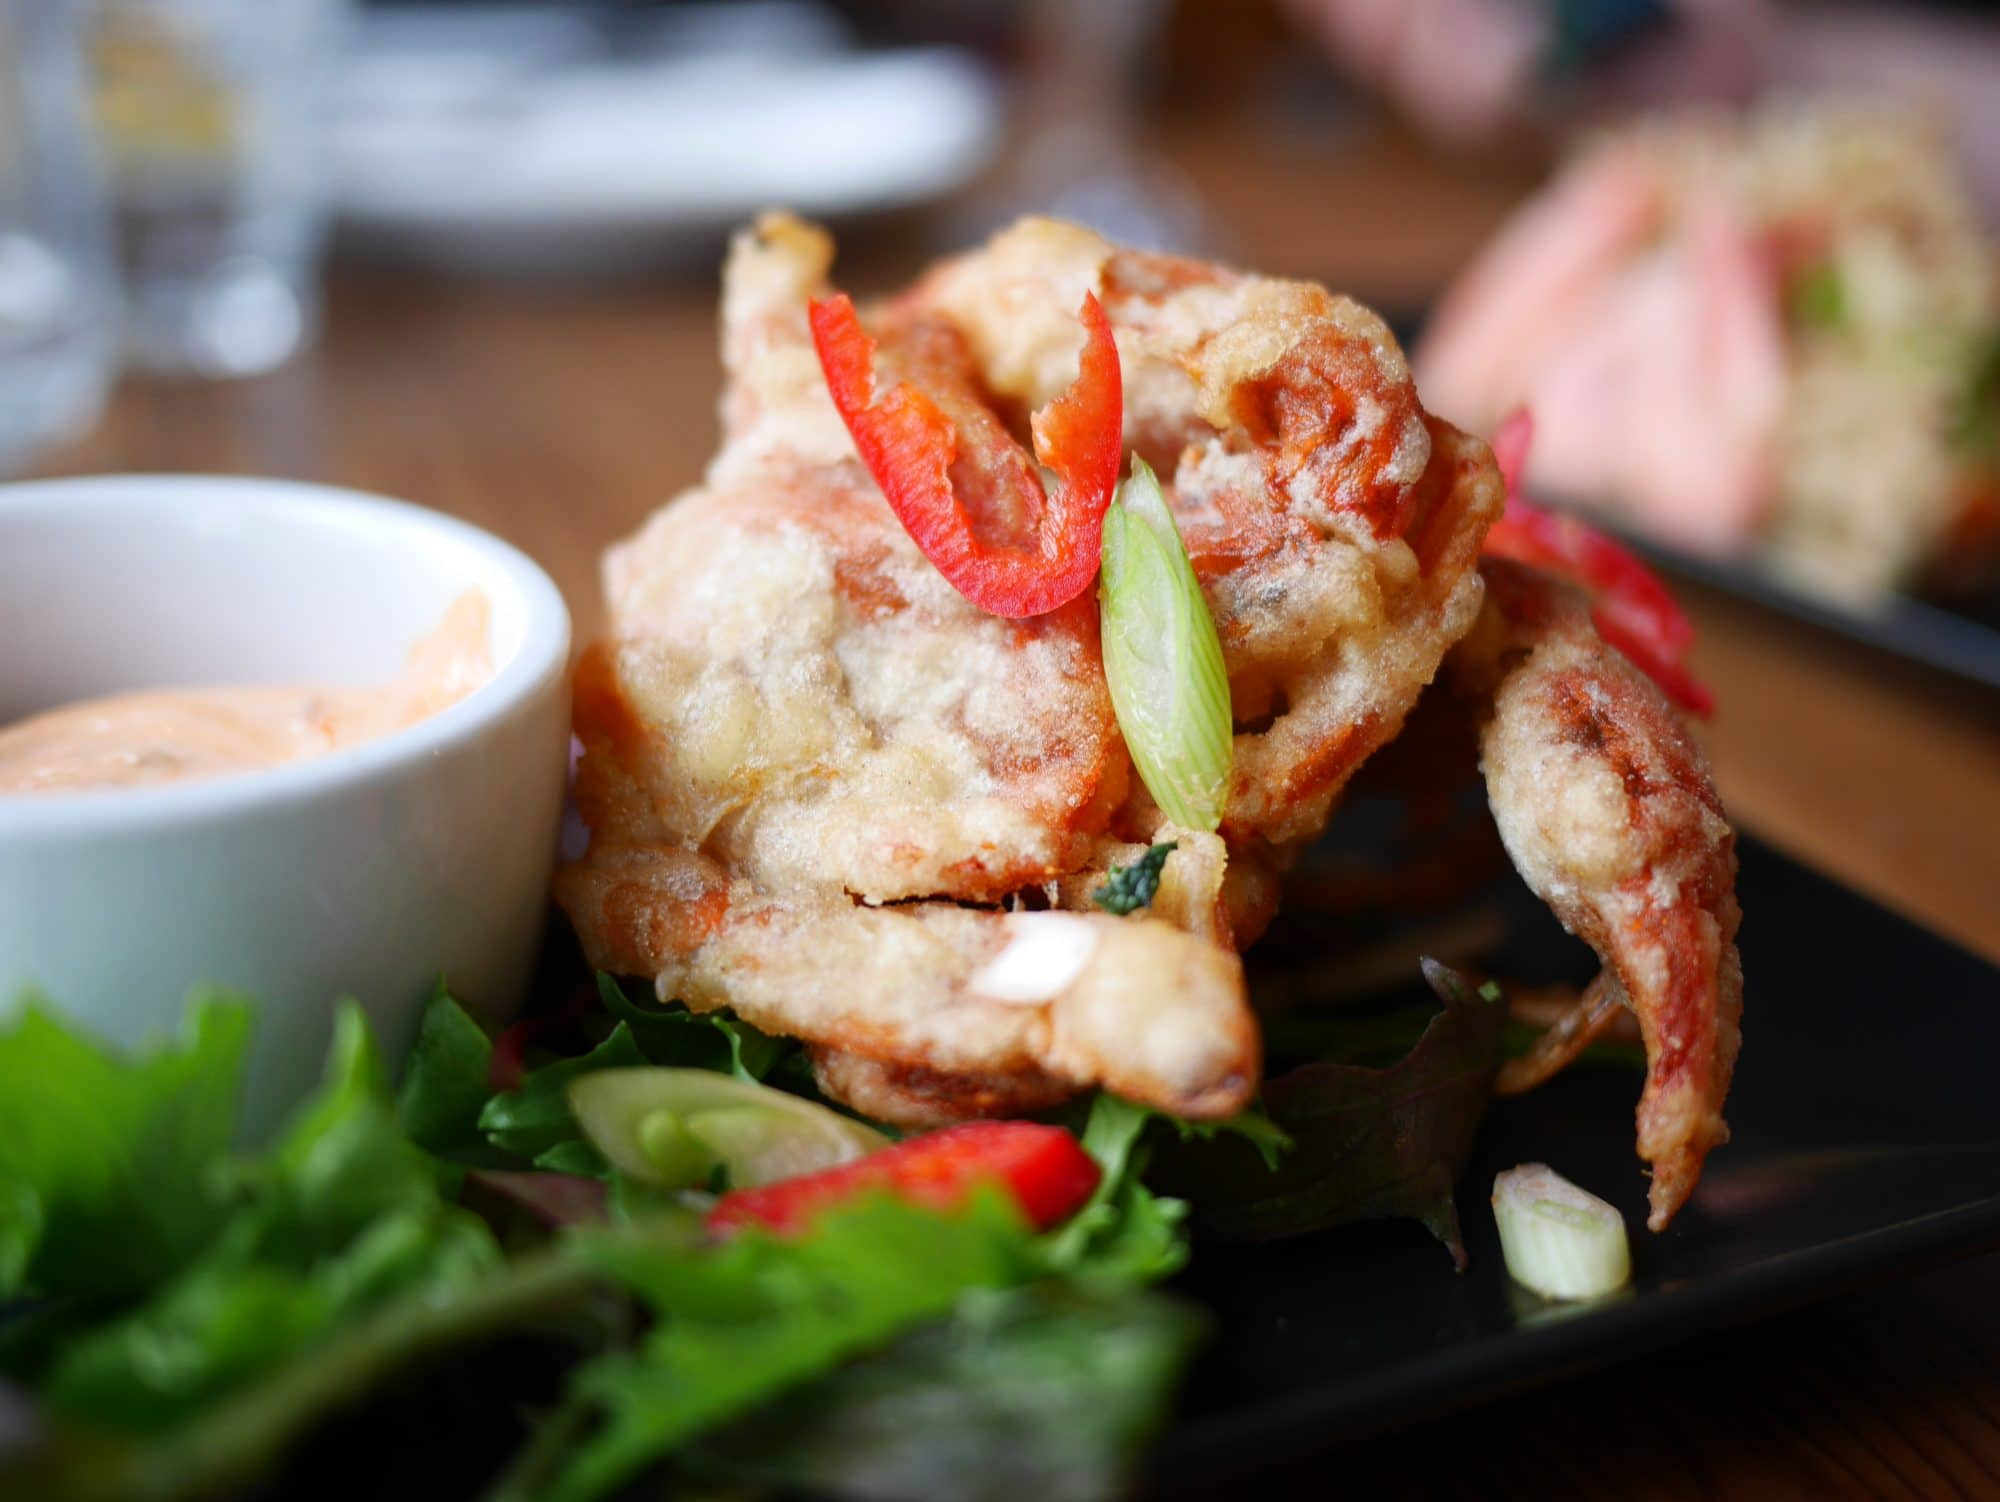 Soft shell tempura crab at The Copper Clam in Brighton - Copper Clam Brighton Review